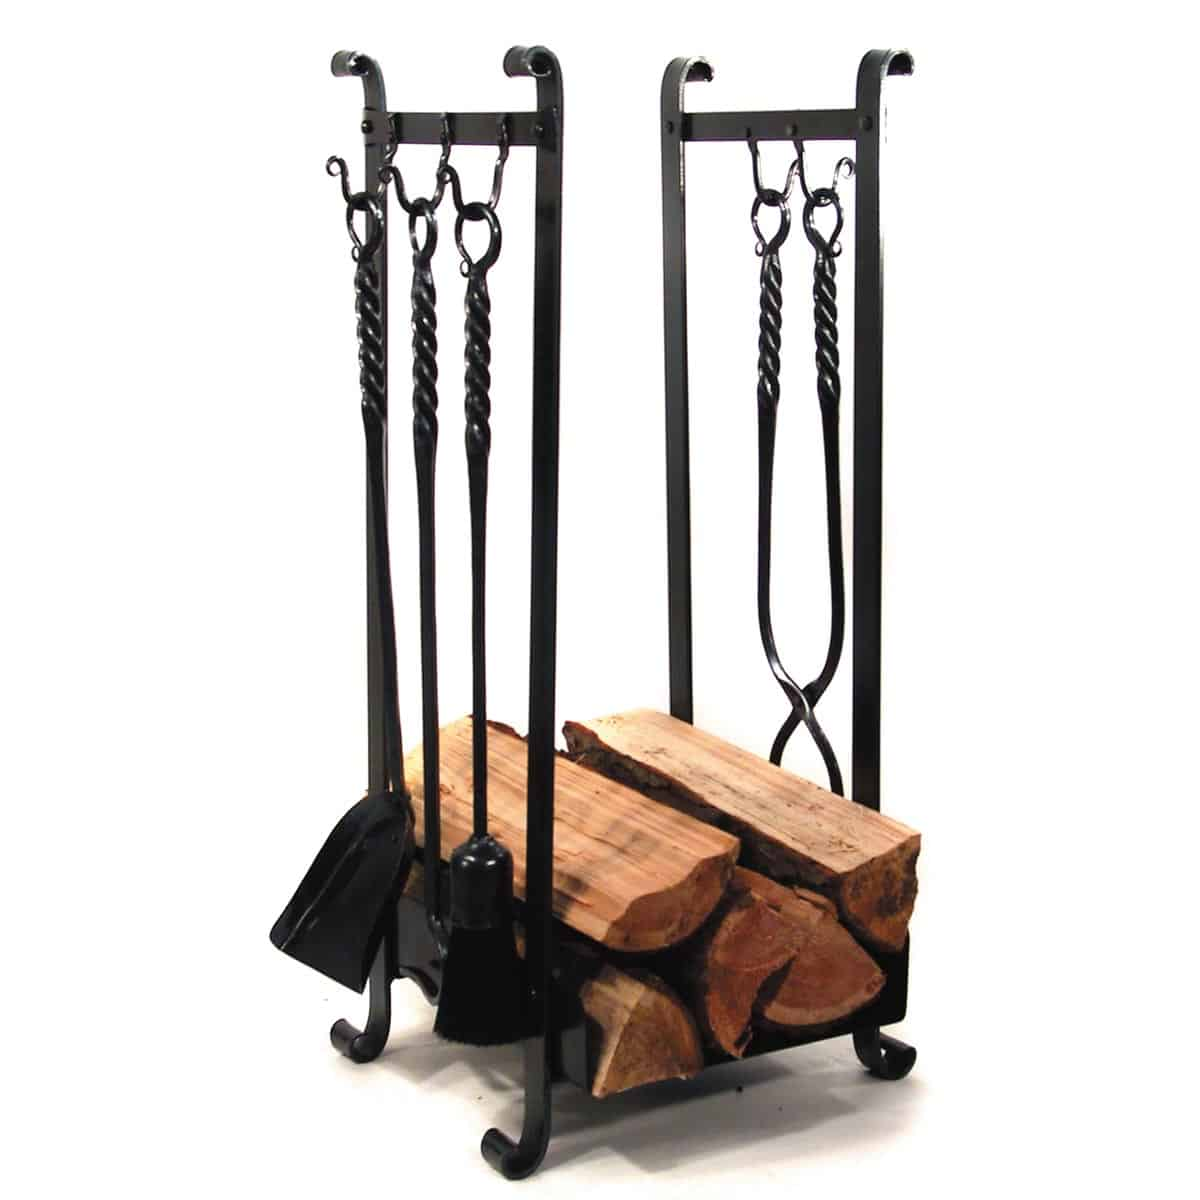 Log Holder with 5 Hooks - Furnishings- Edmonton Blacksmith Shop